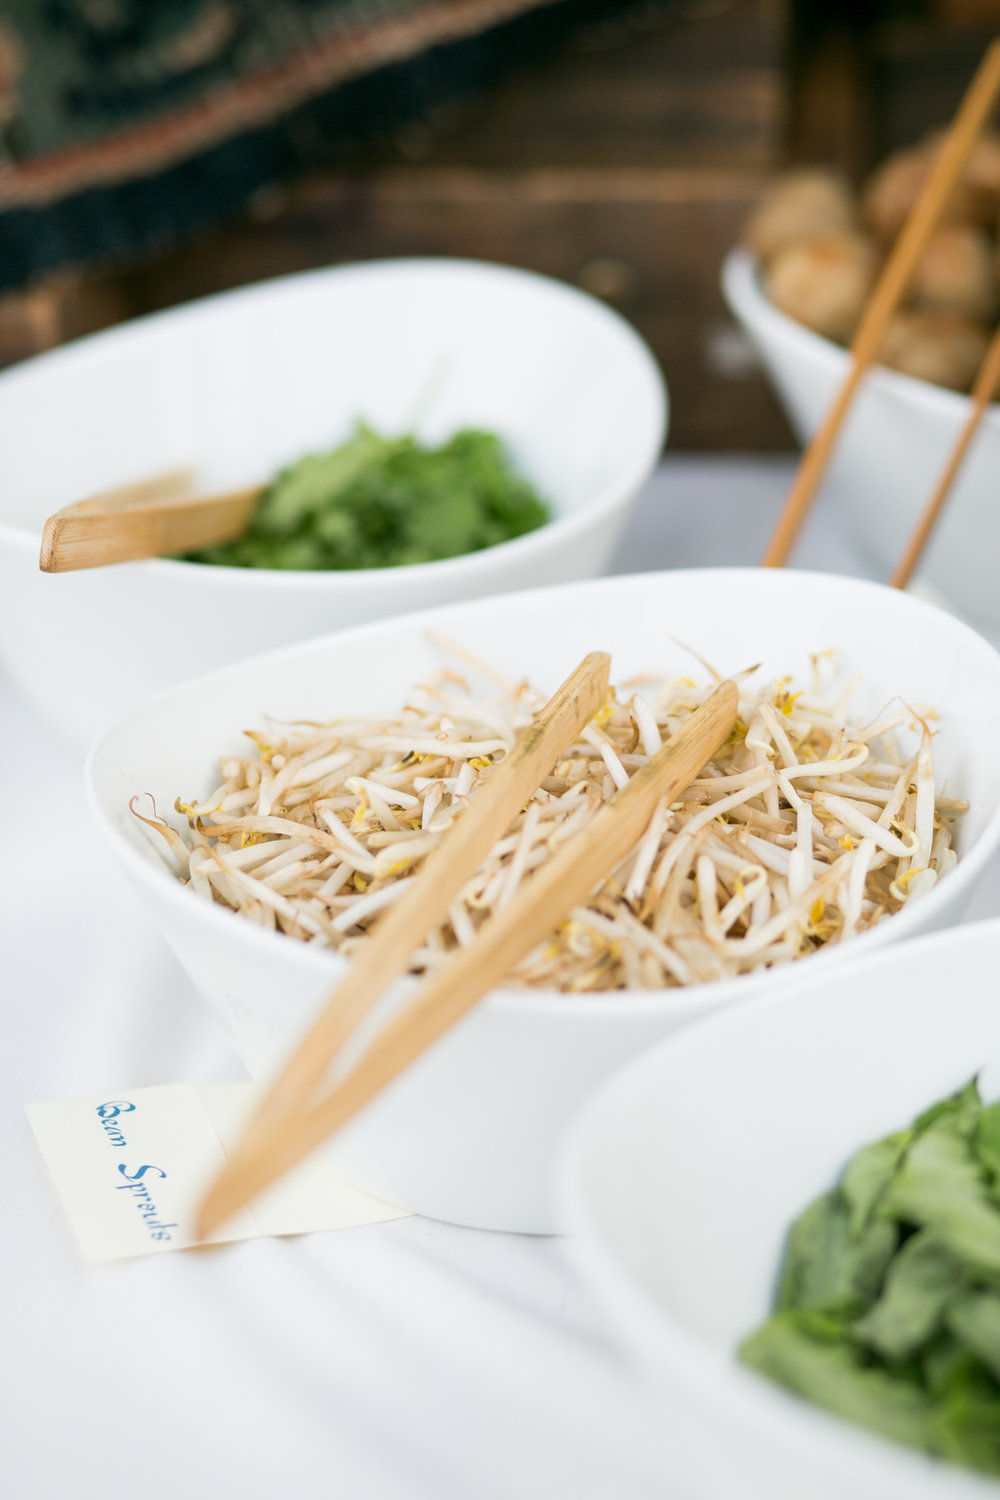 santabarbarawedding.com | Feast & Fest Catering | Asian Noodles | MiBelle Photographers